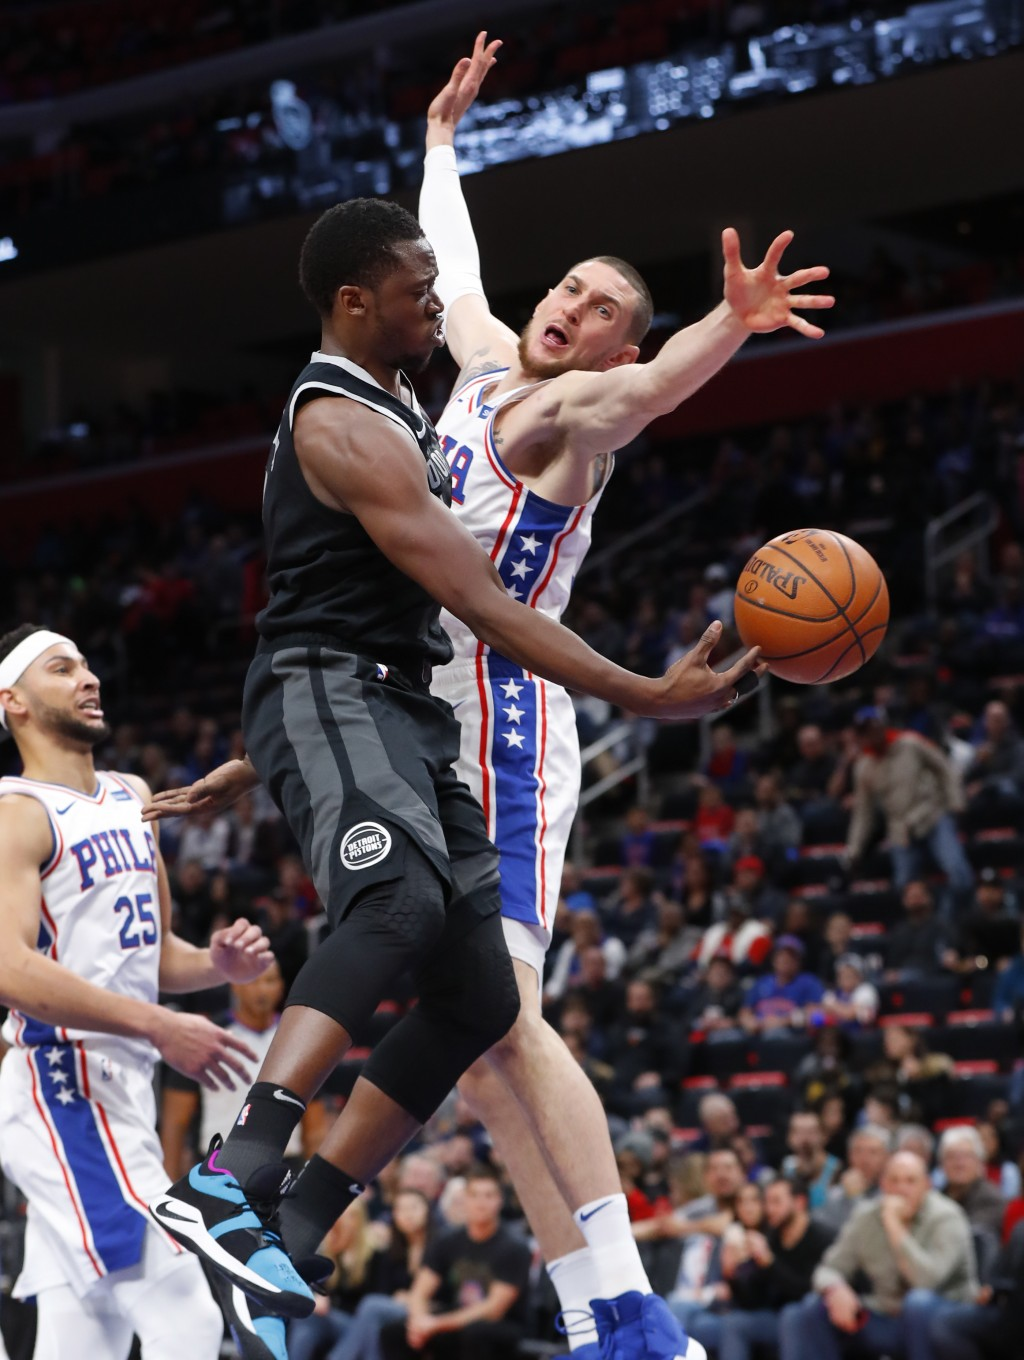 Detroit Pistons guard Reggie Jackson (1) passes around Philadelphia 76ers forward Mike Muscala (31) in the first half of an NBA basketball game in Det